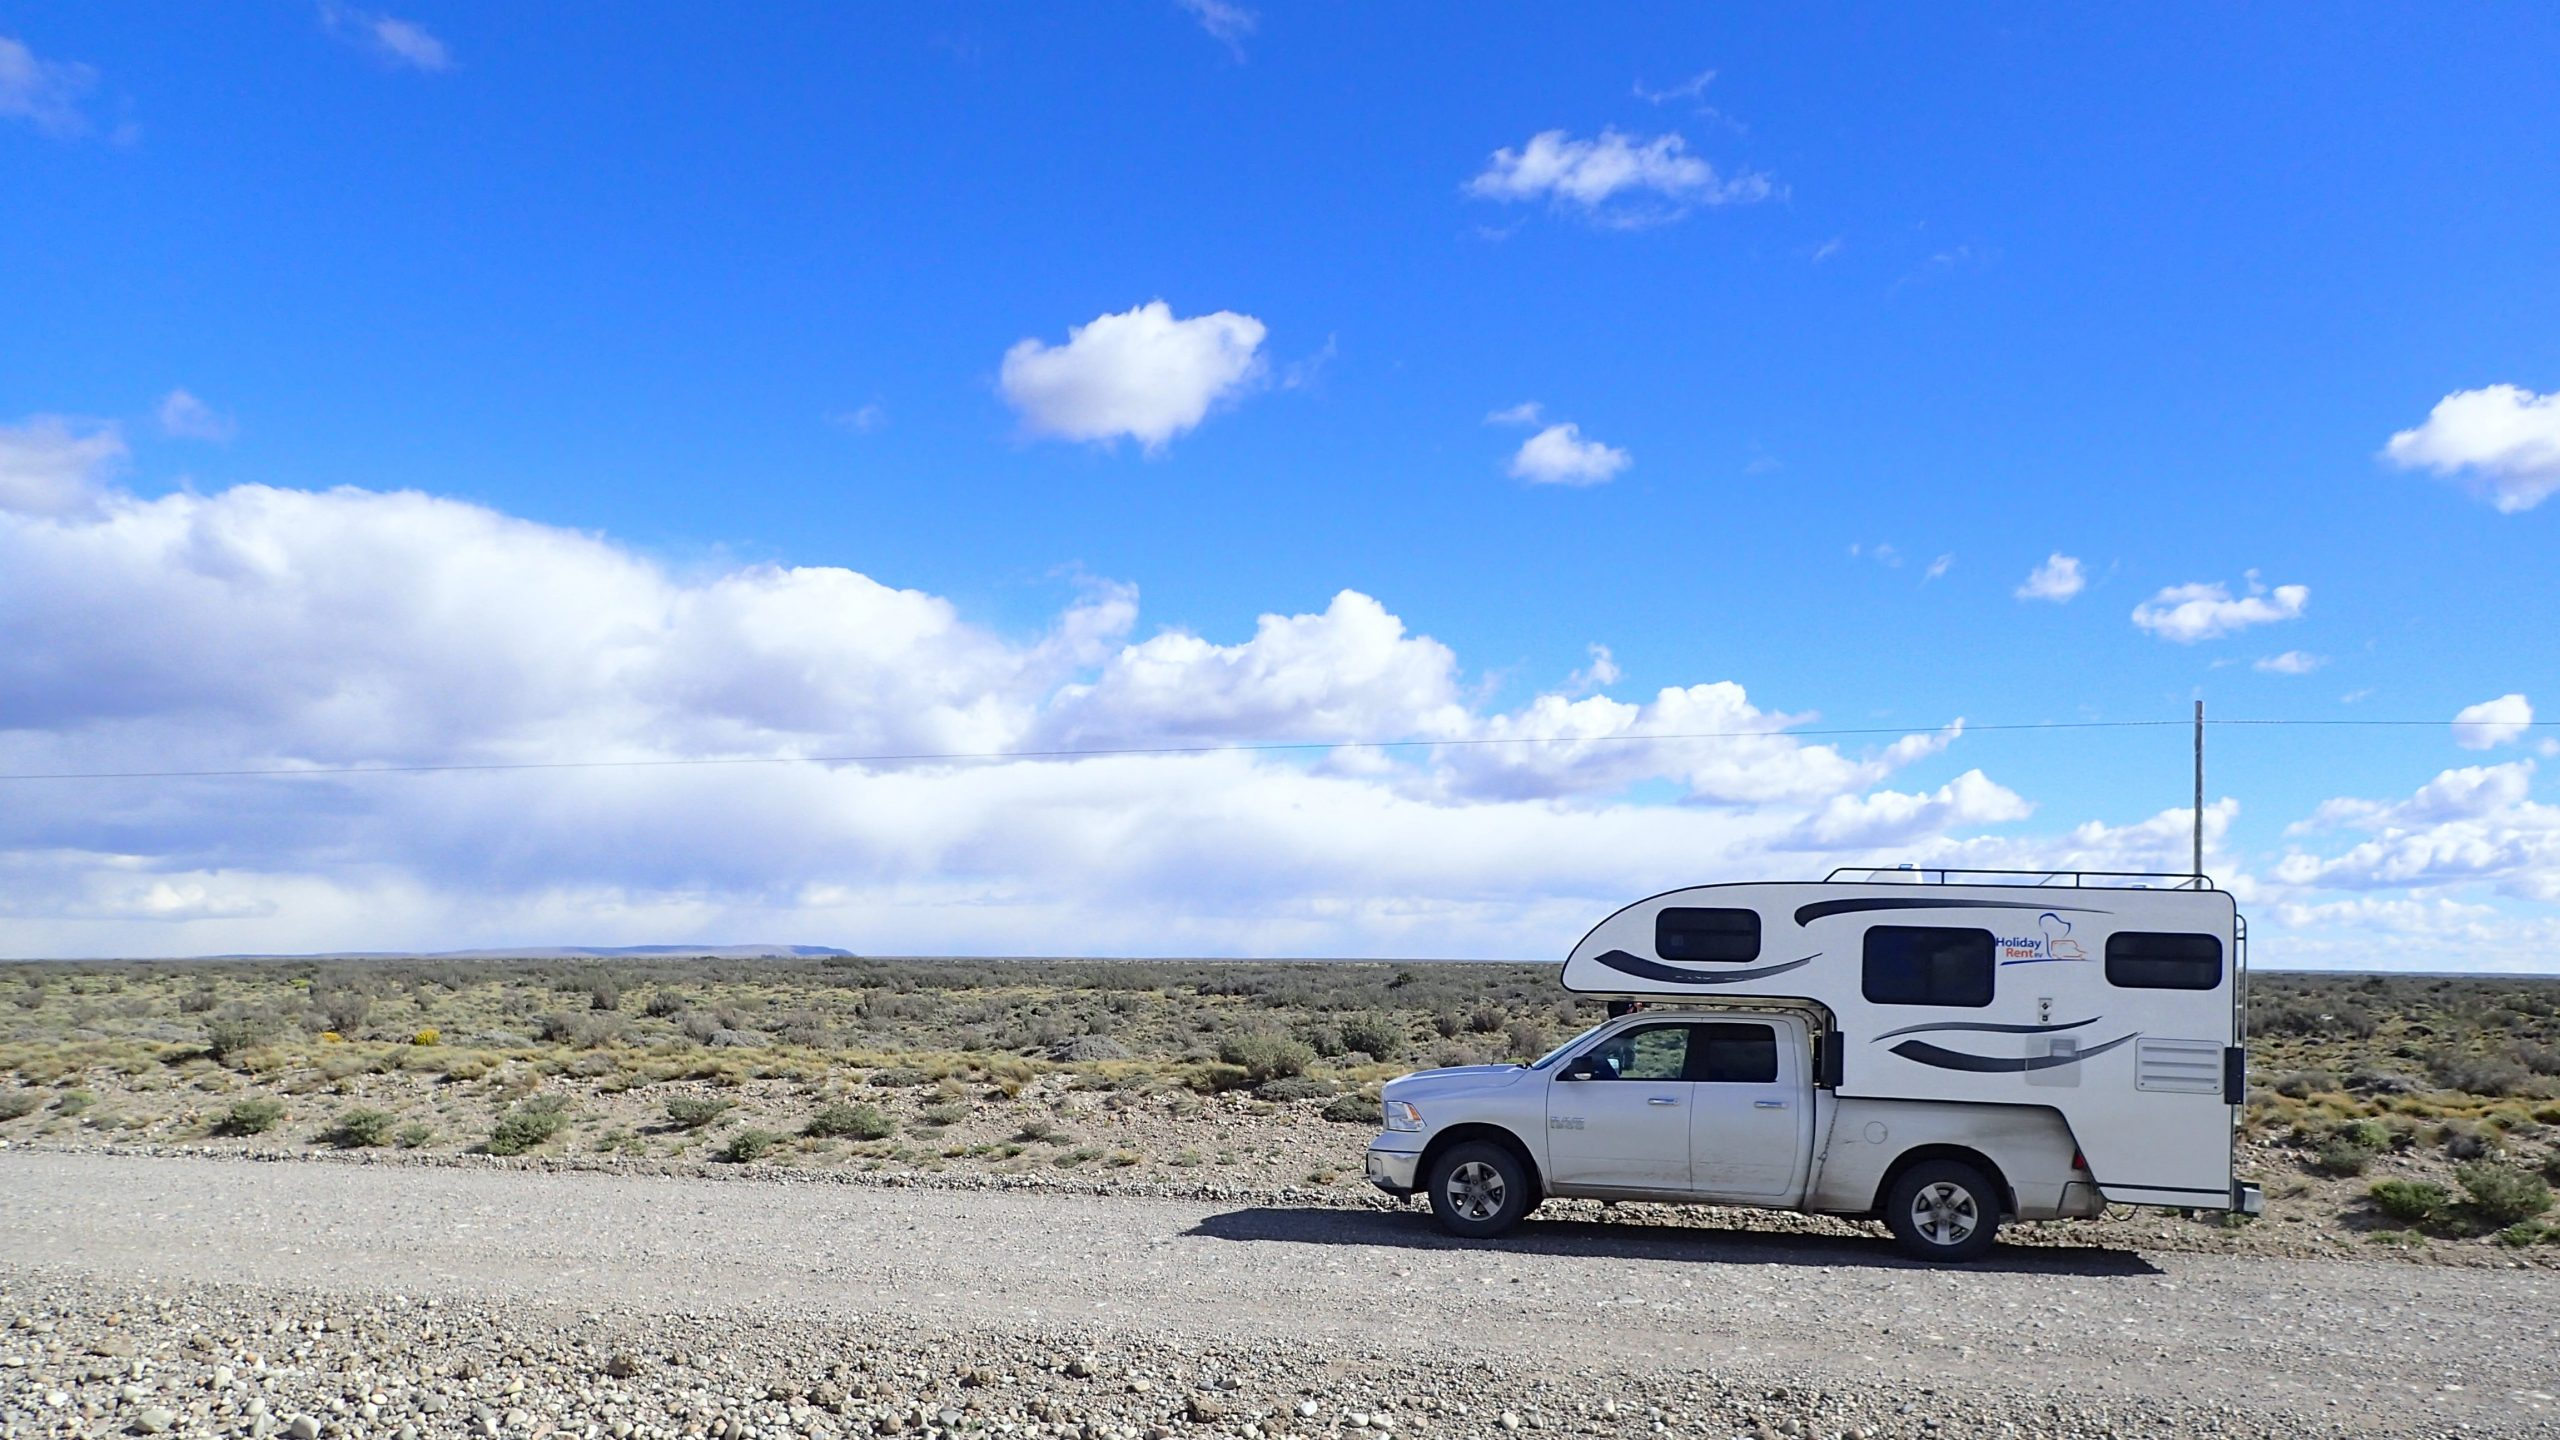 Patagonian steppe Argentina